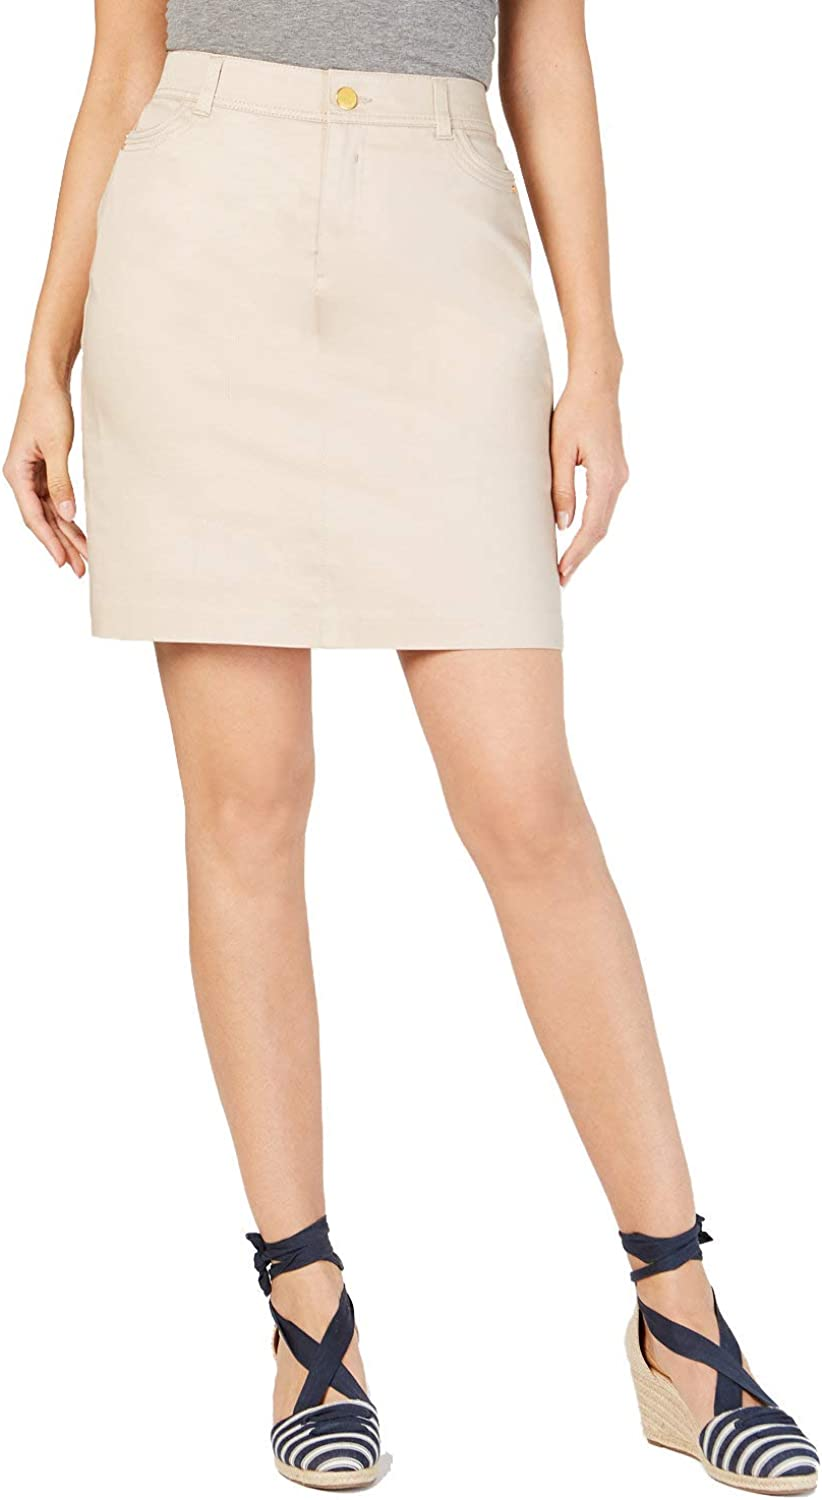 Charter New Free Shipping Club Skort Quality inspection Womens